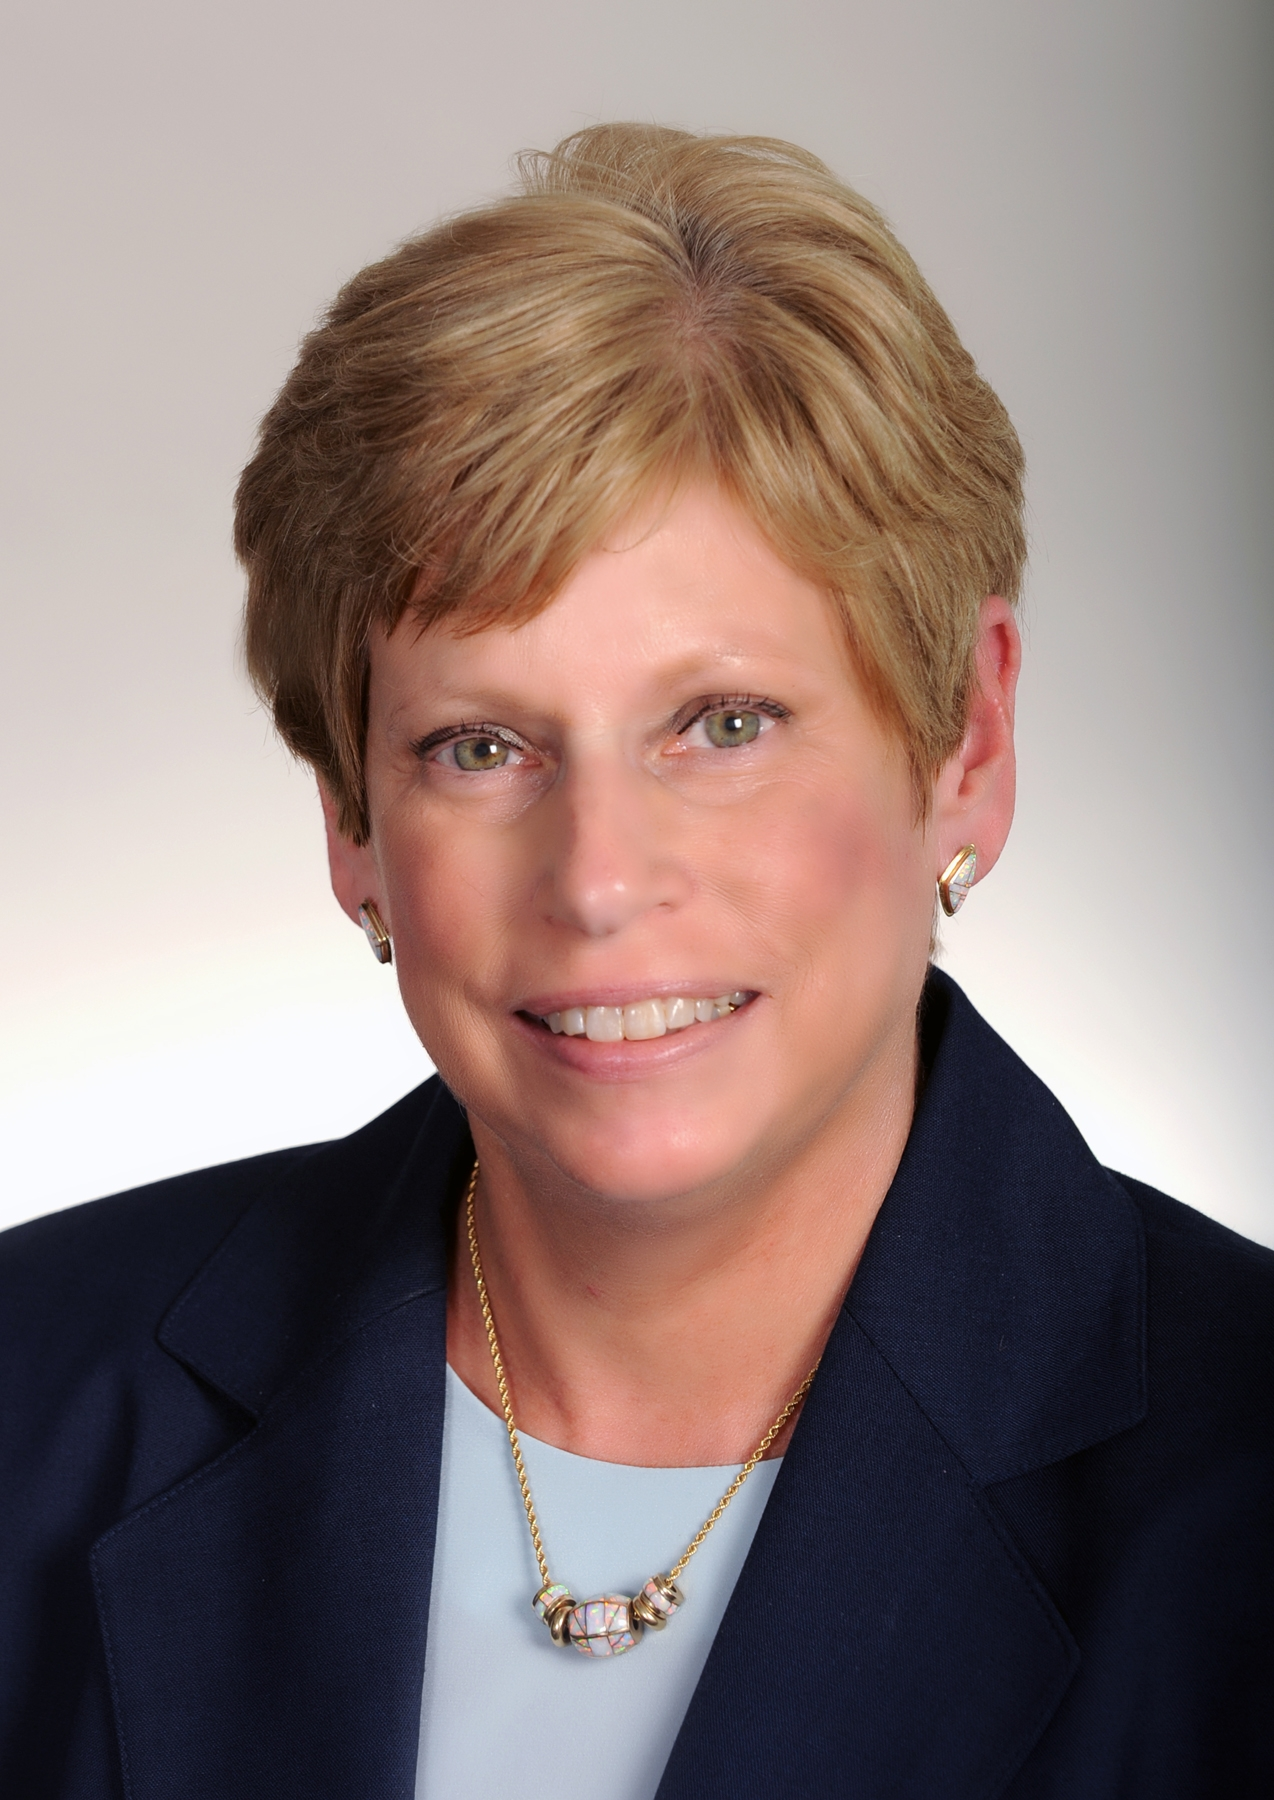 CGI Secures Position on $7B Army Software Support Vehicle; Barb Fast Comments - top government contractors - best government contracting event